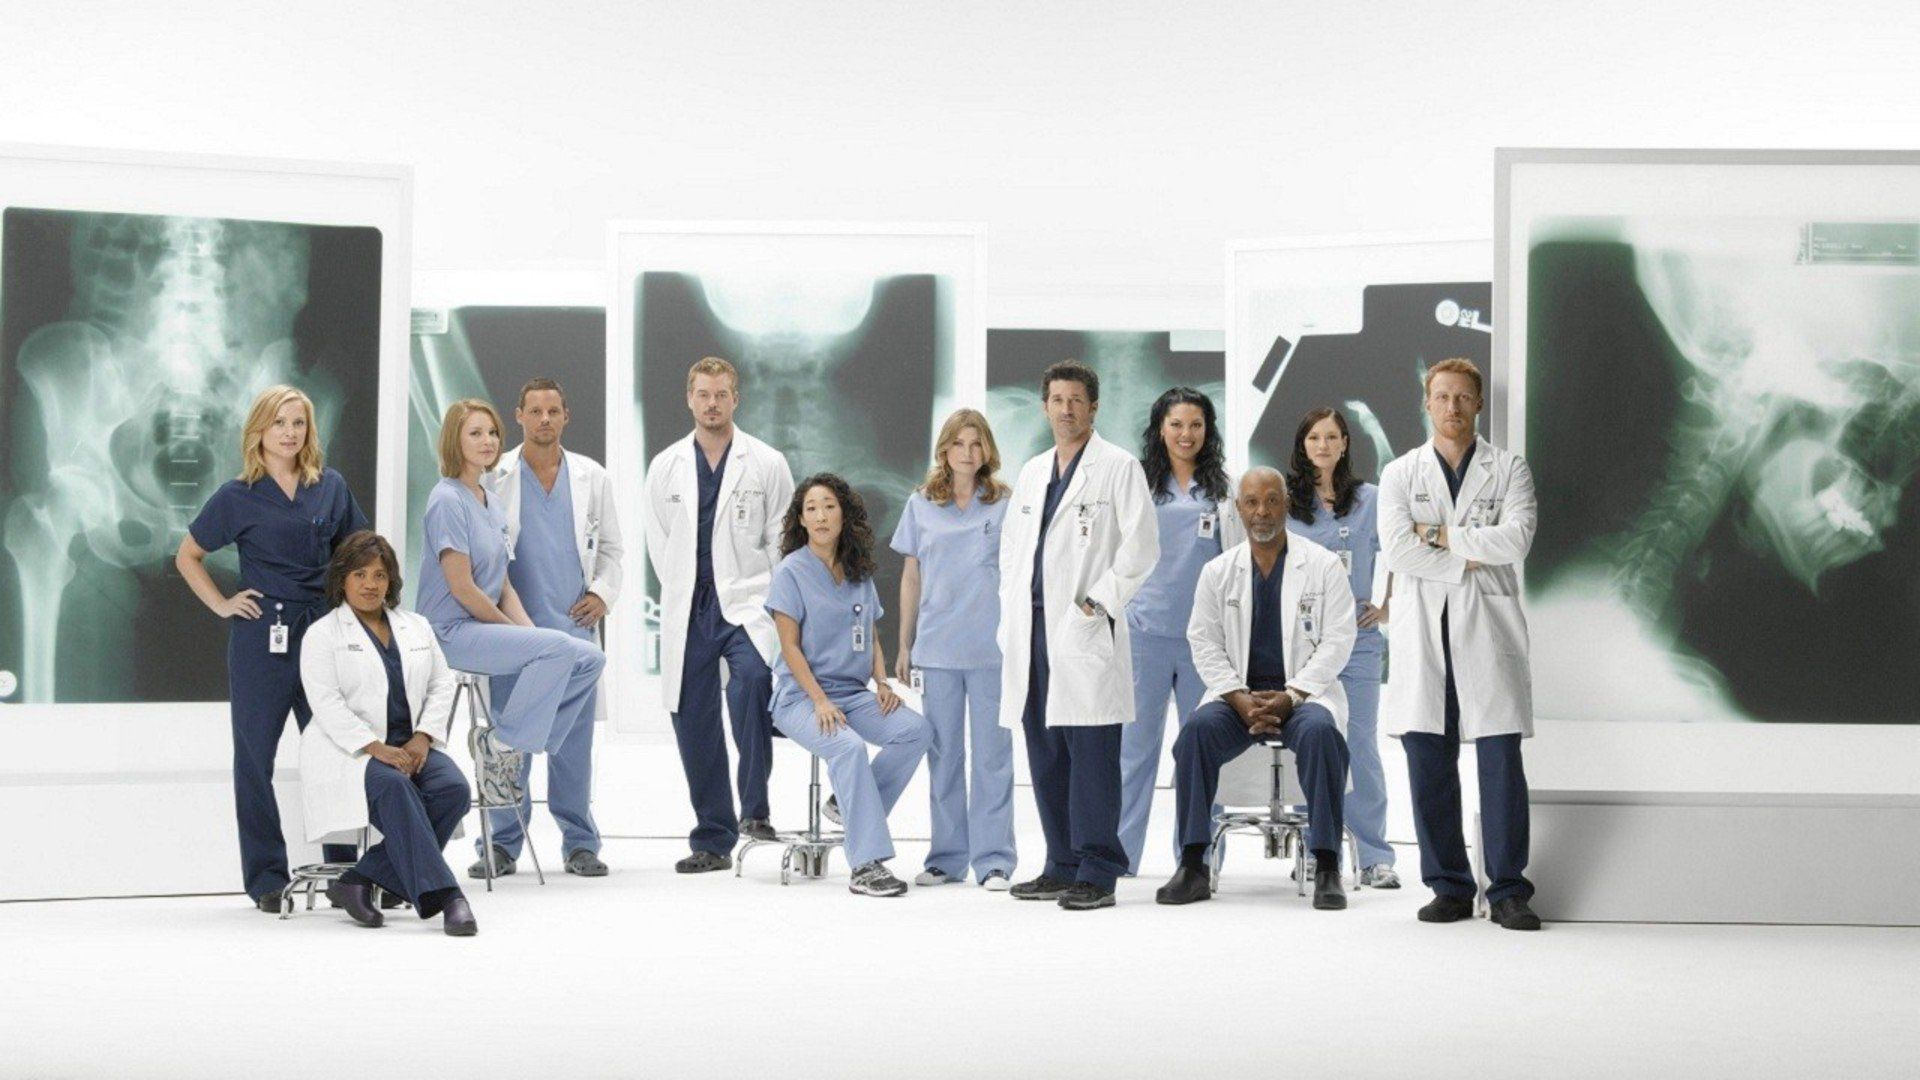 Watch Greys Anatomy Season 14 Episode 12 Harder Better Faster